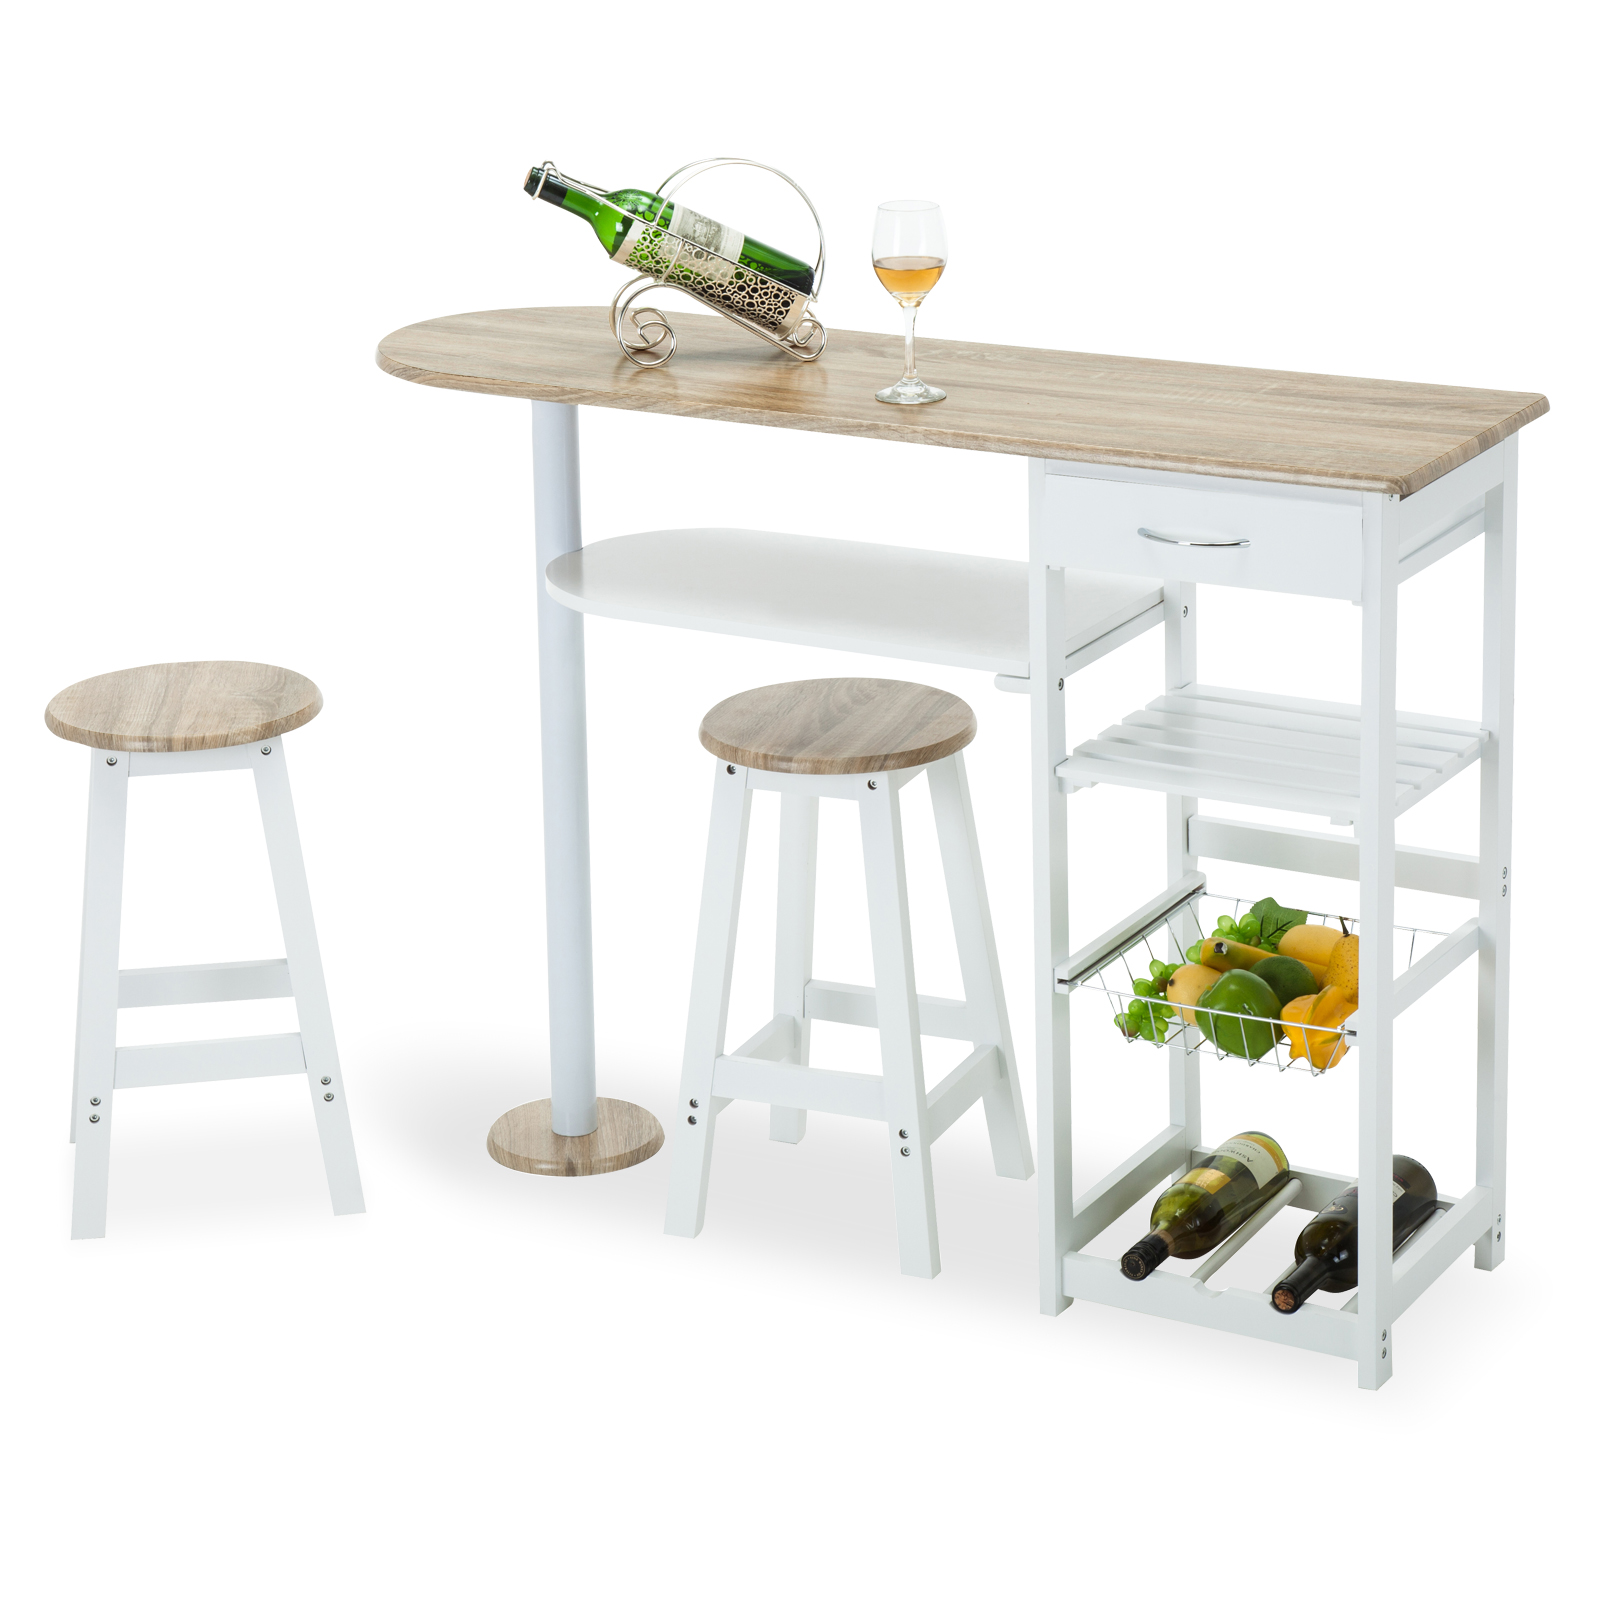 Modern Kitchen Bar Stools Kitchen Islands With Table: Oak White Kitchen Island Cart Trolley Dining Table Storage